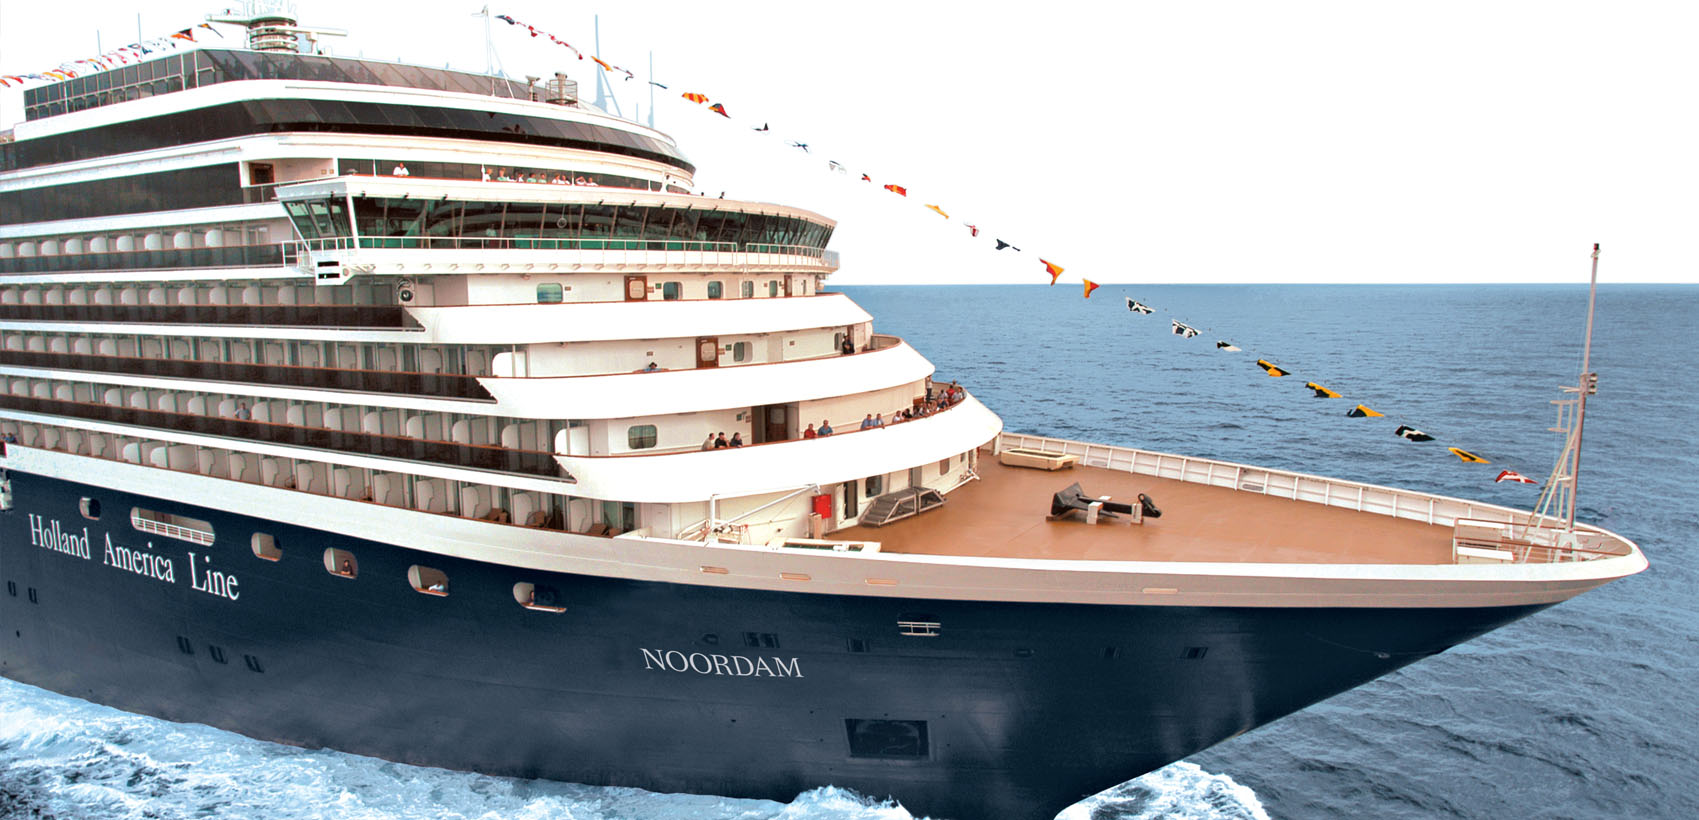 Why Not Now with Holland America! 0